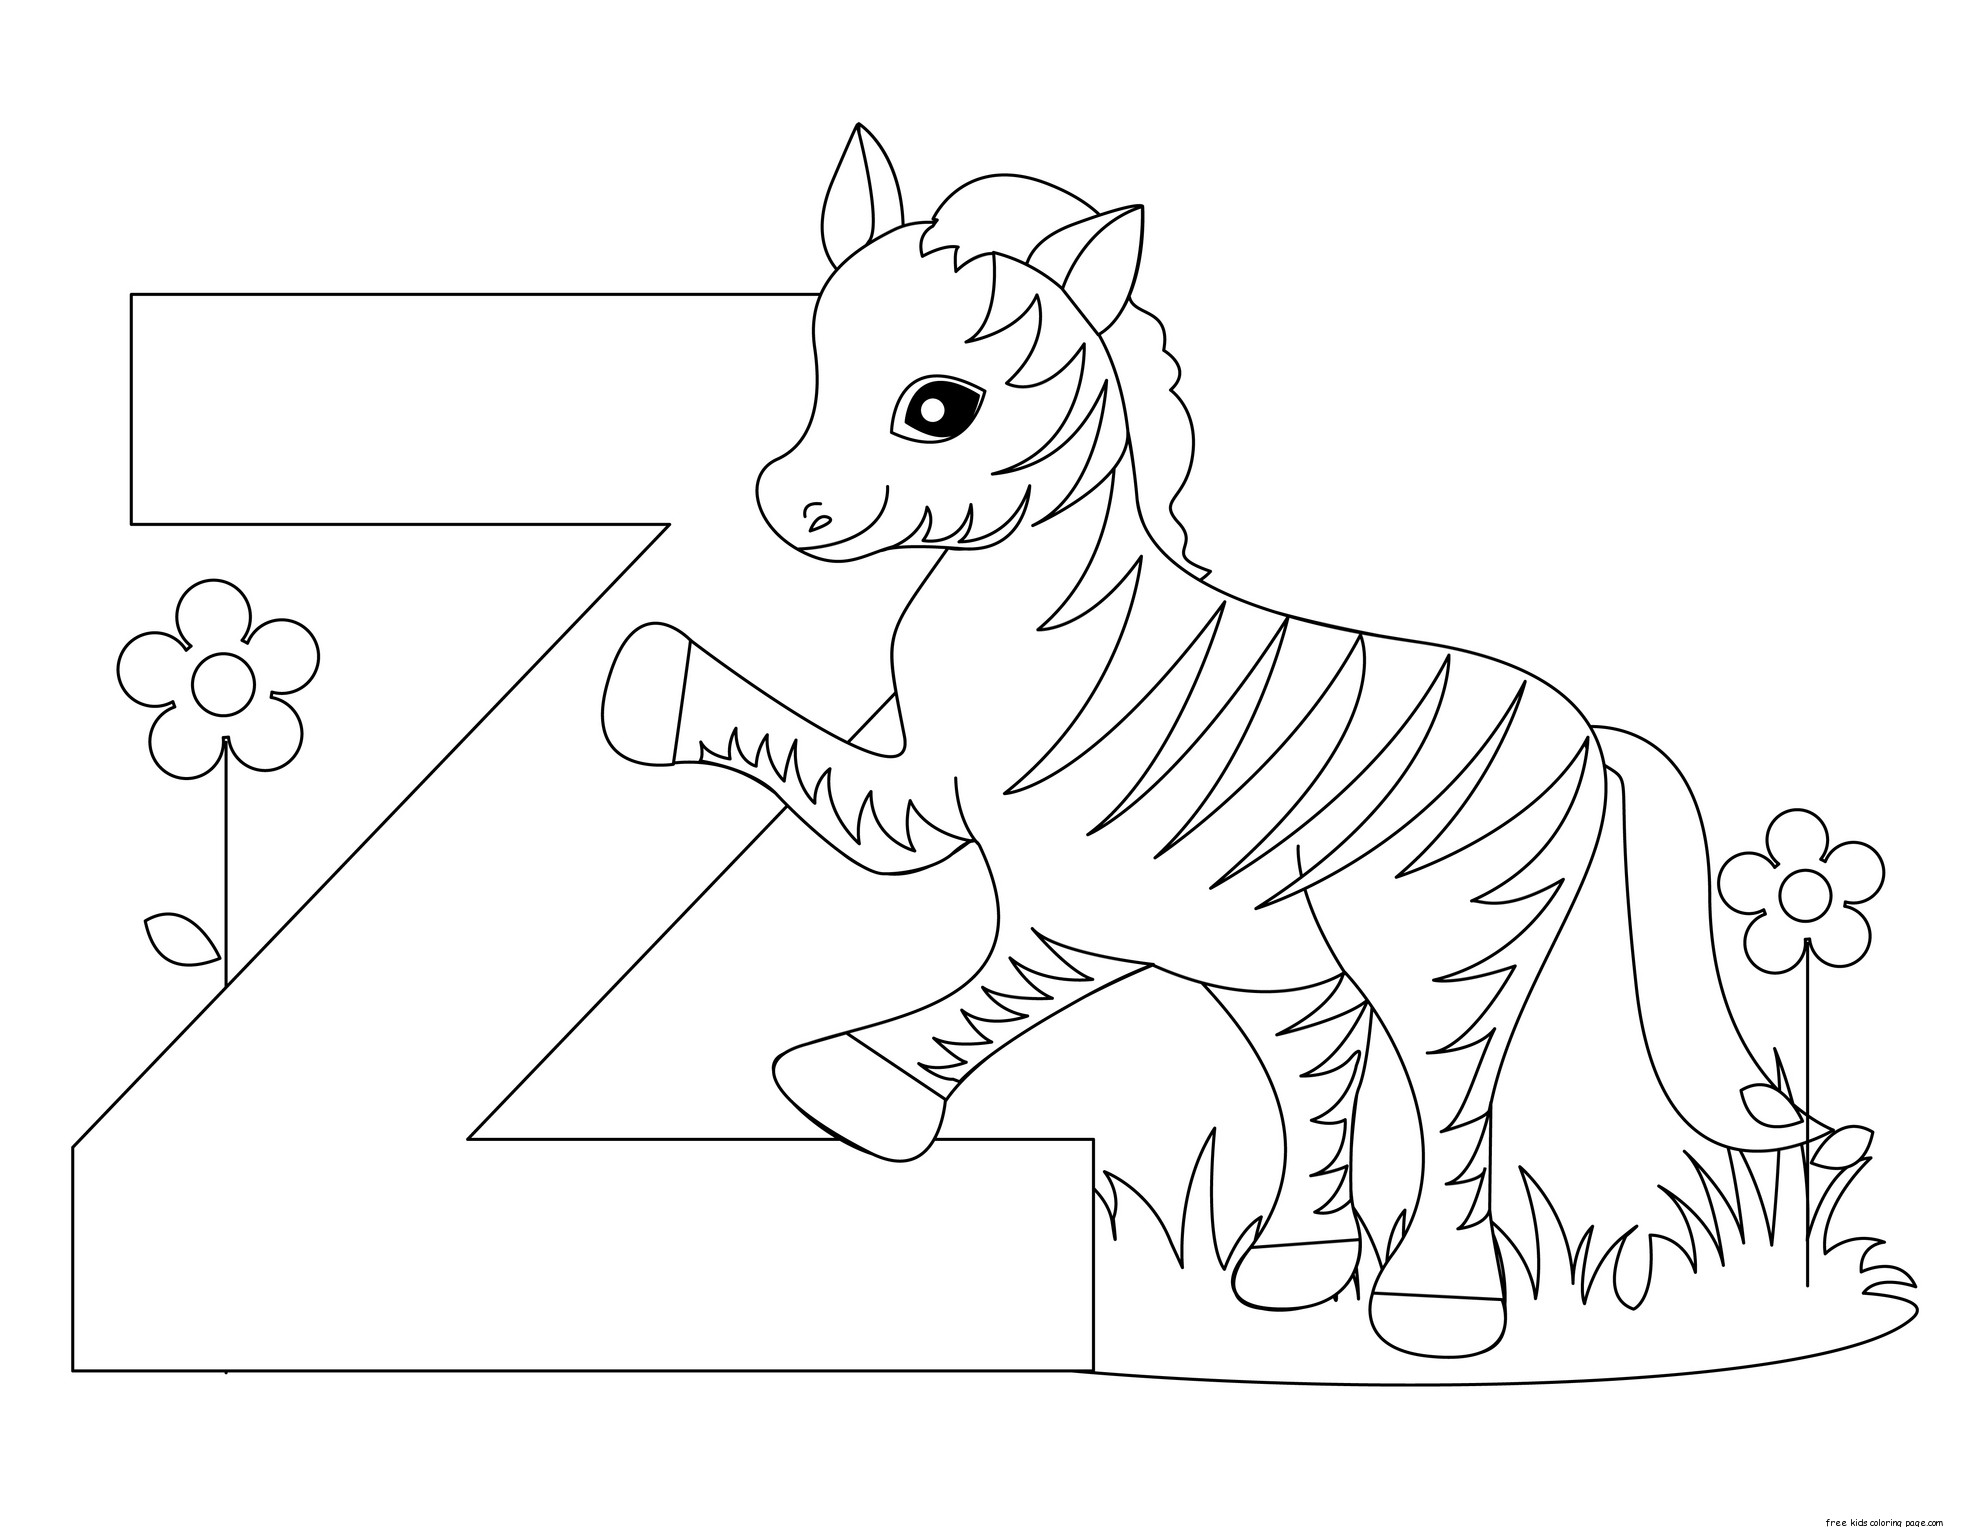 letter z coloring page my a to z coloring book letter z coloring page preschool z coloring page letter